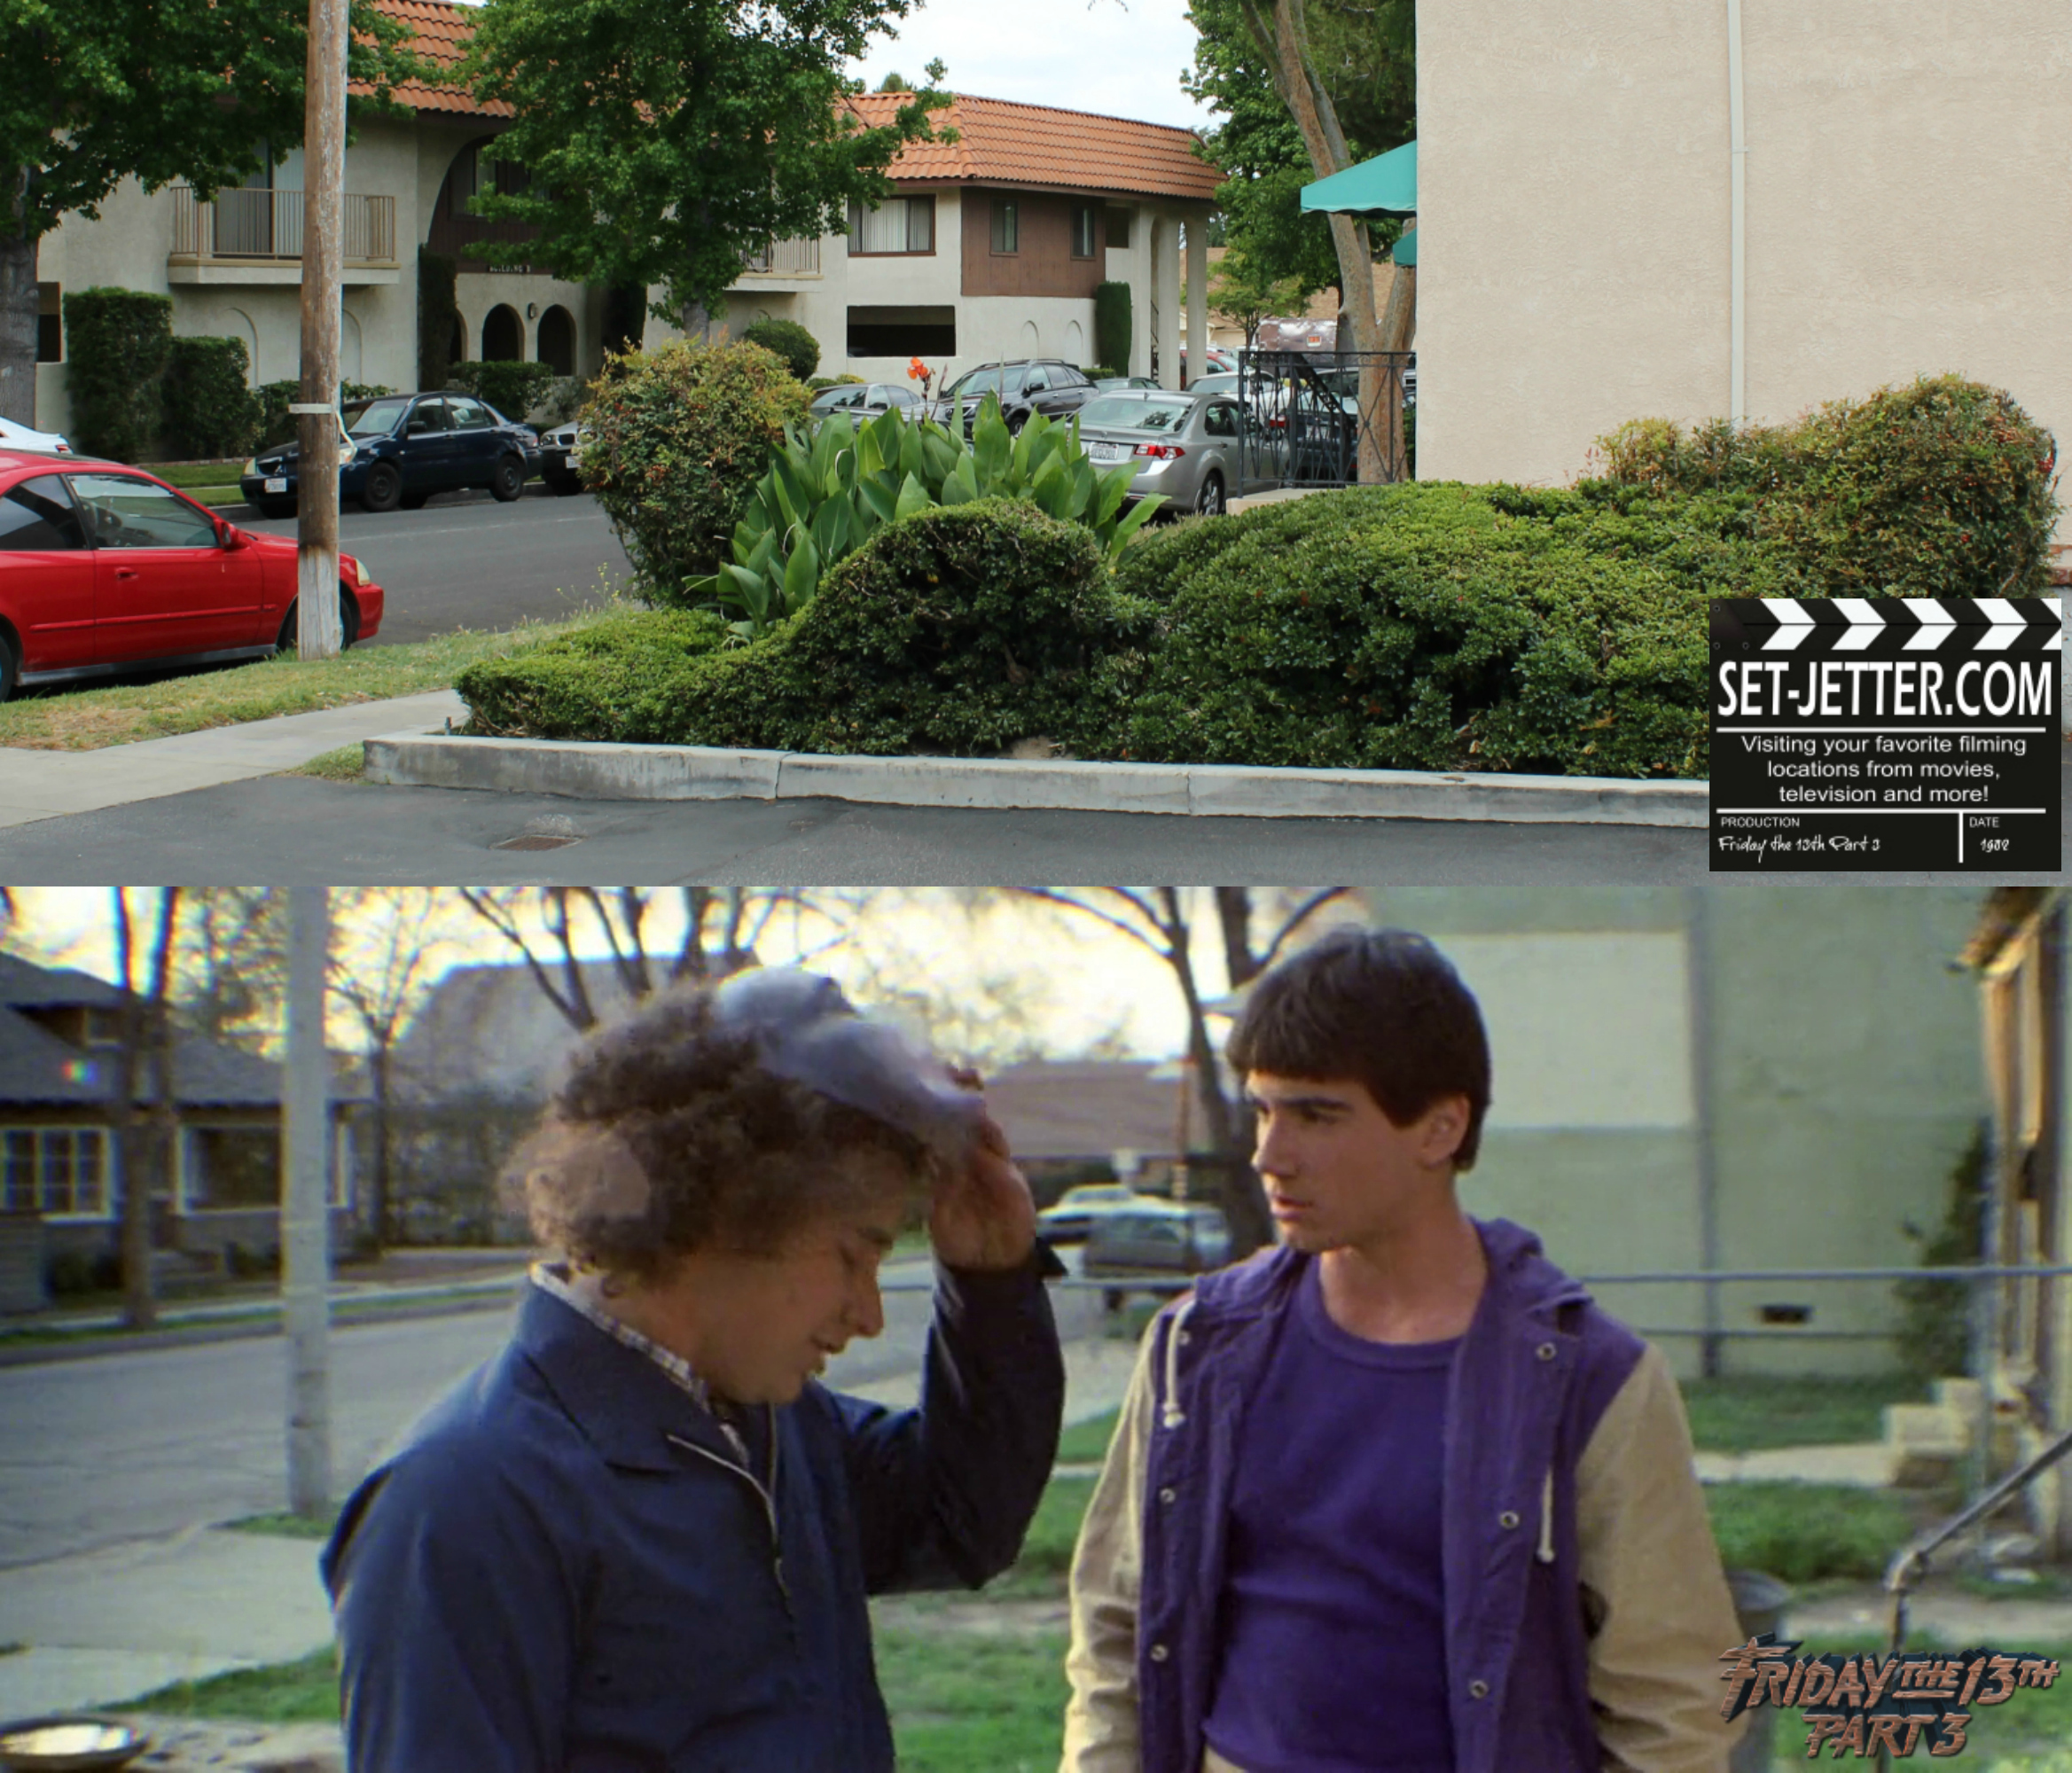 Friday the 13th Part 3 comparison 28.jpg